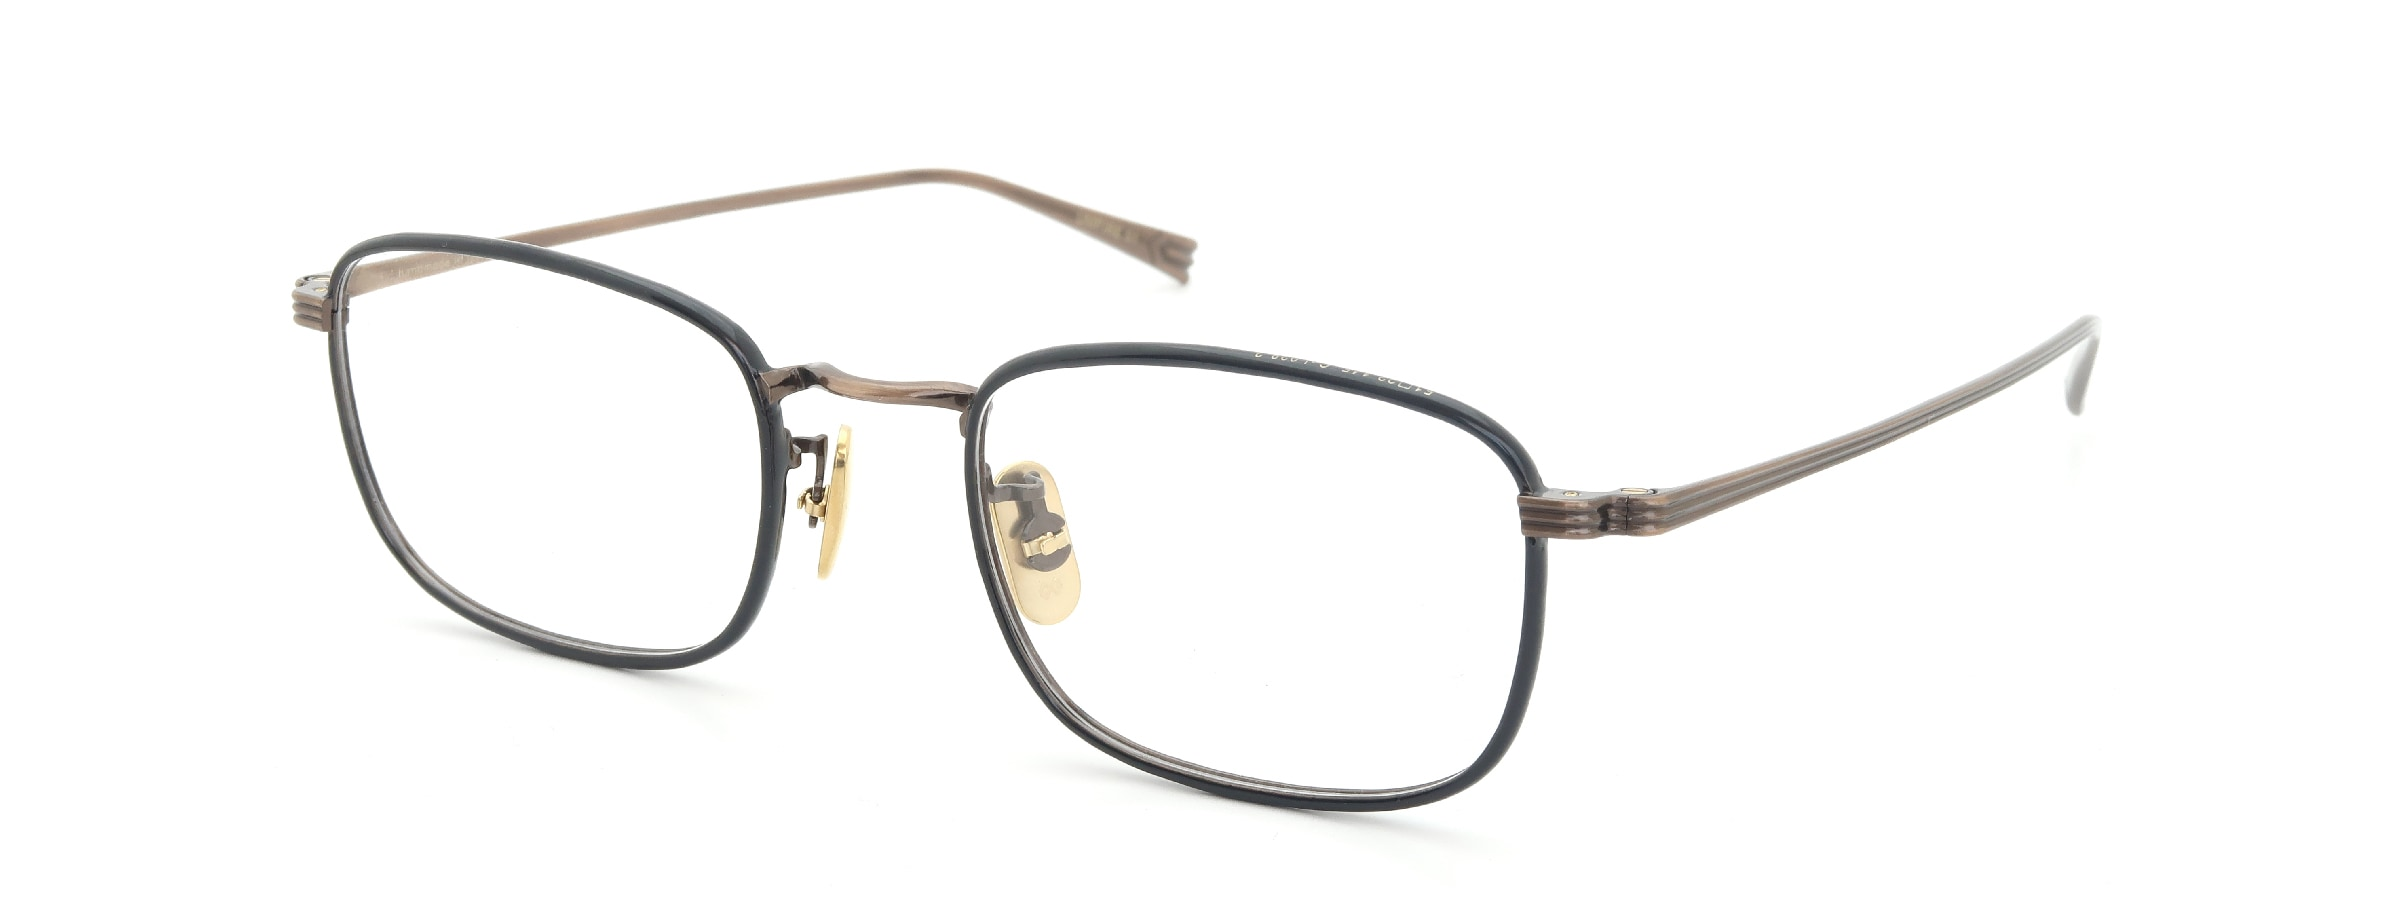 OG × OLIVER GOLDSMITH UMPIRE アンパイア